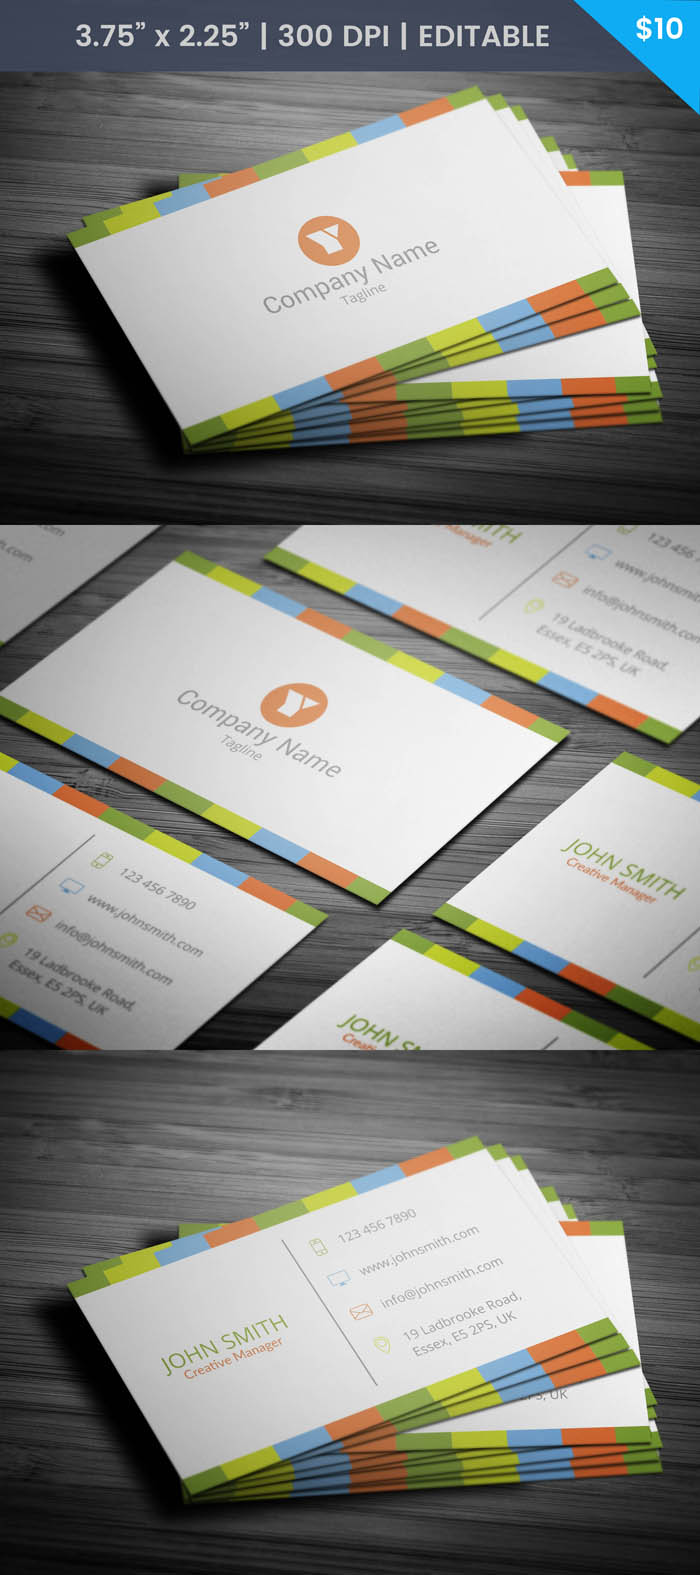 Elegant Boutique Business Card - Full Preview